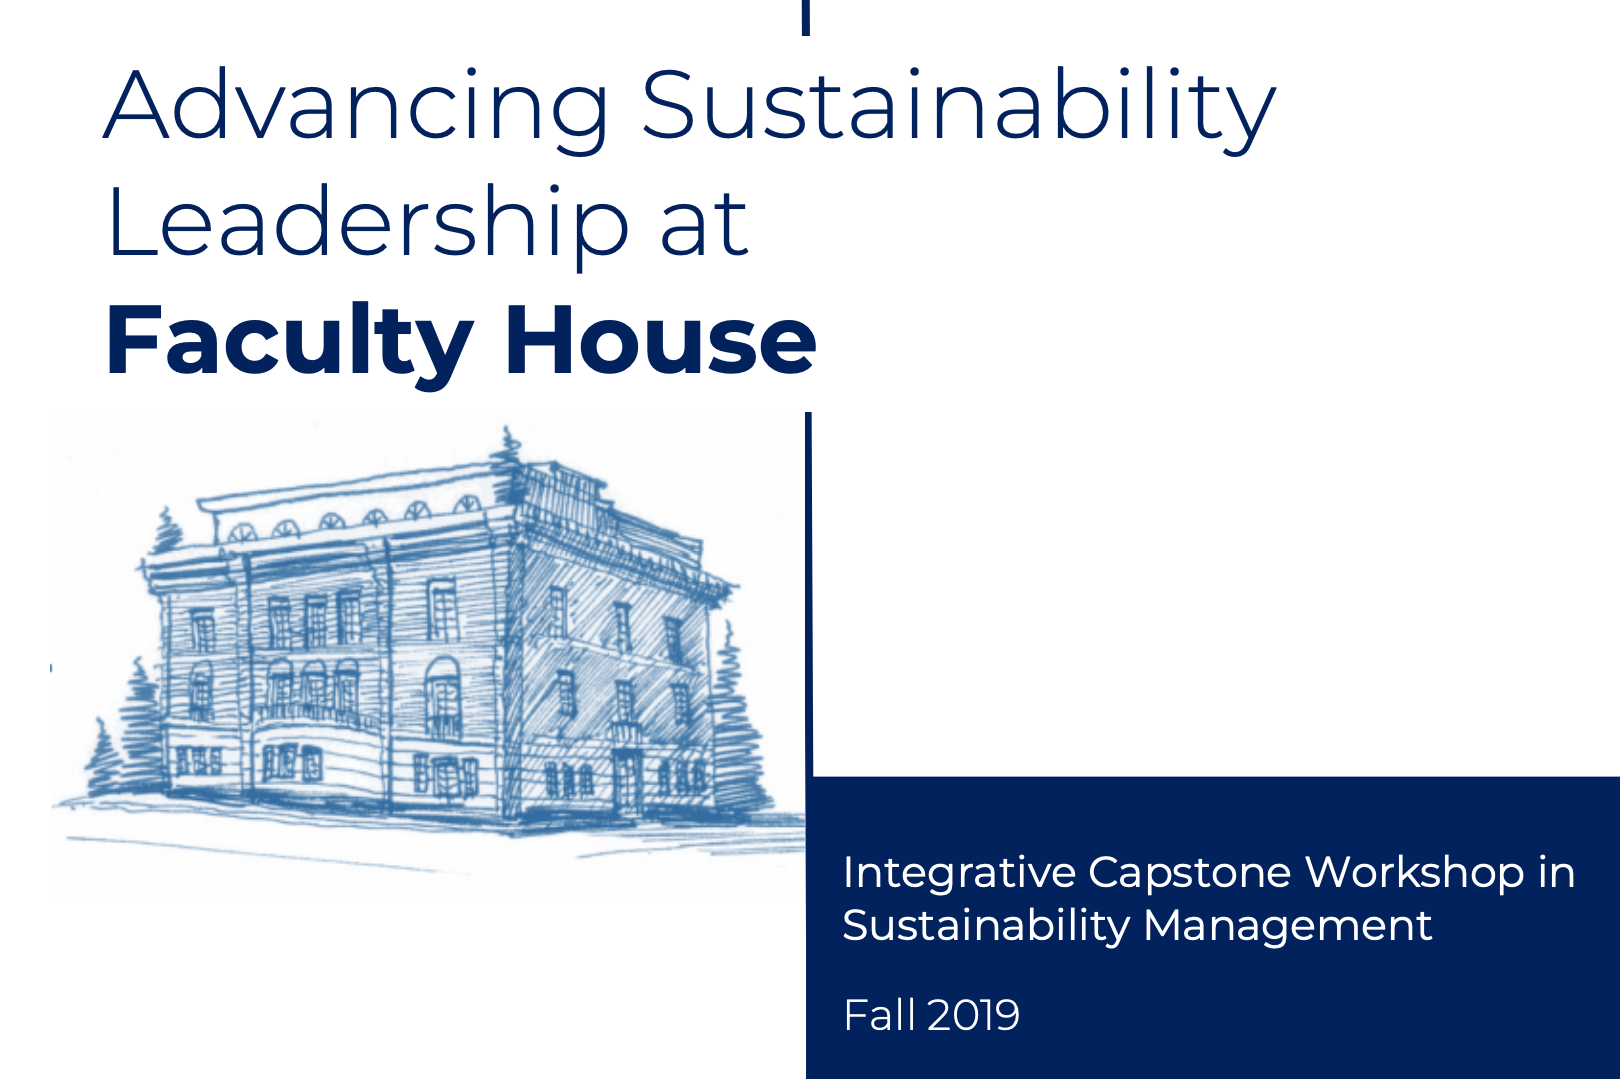 faculty house capstone cover image